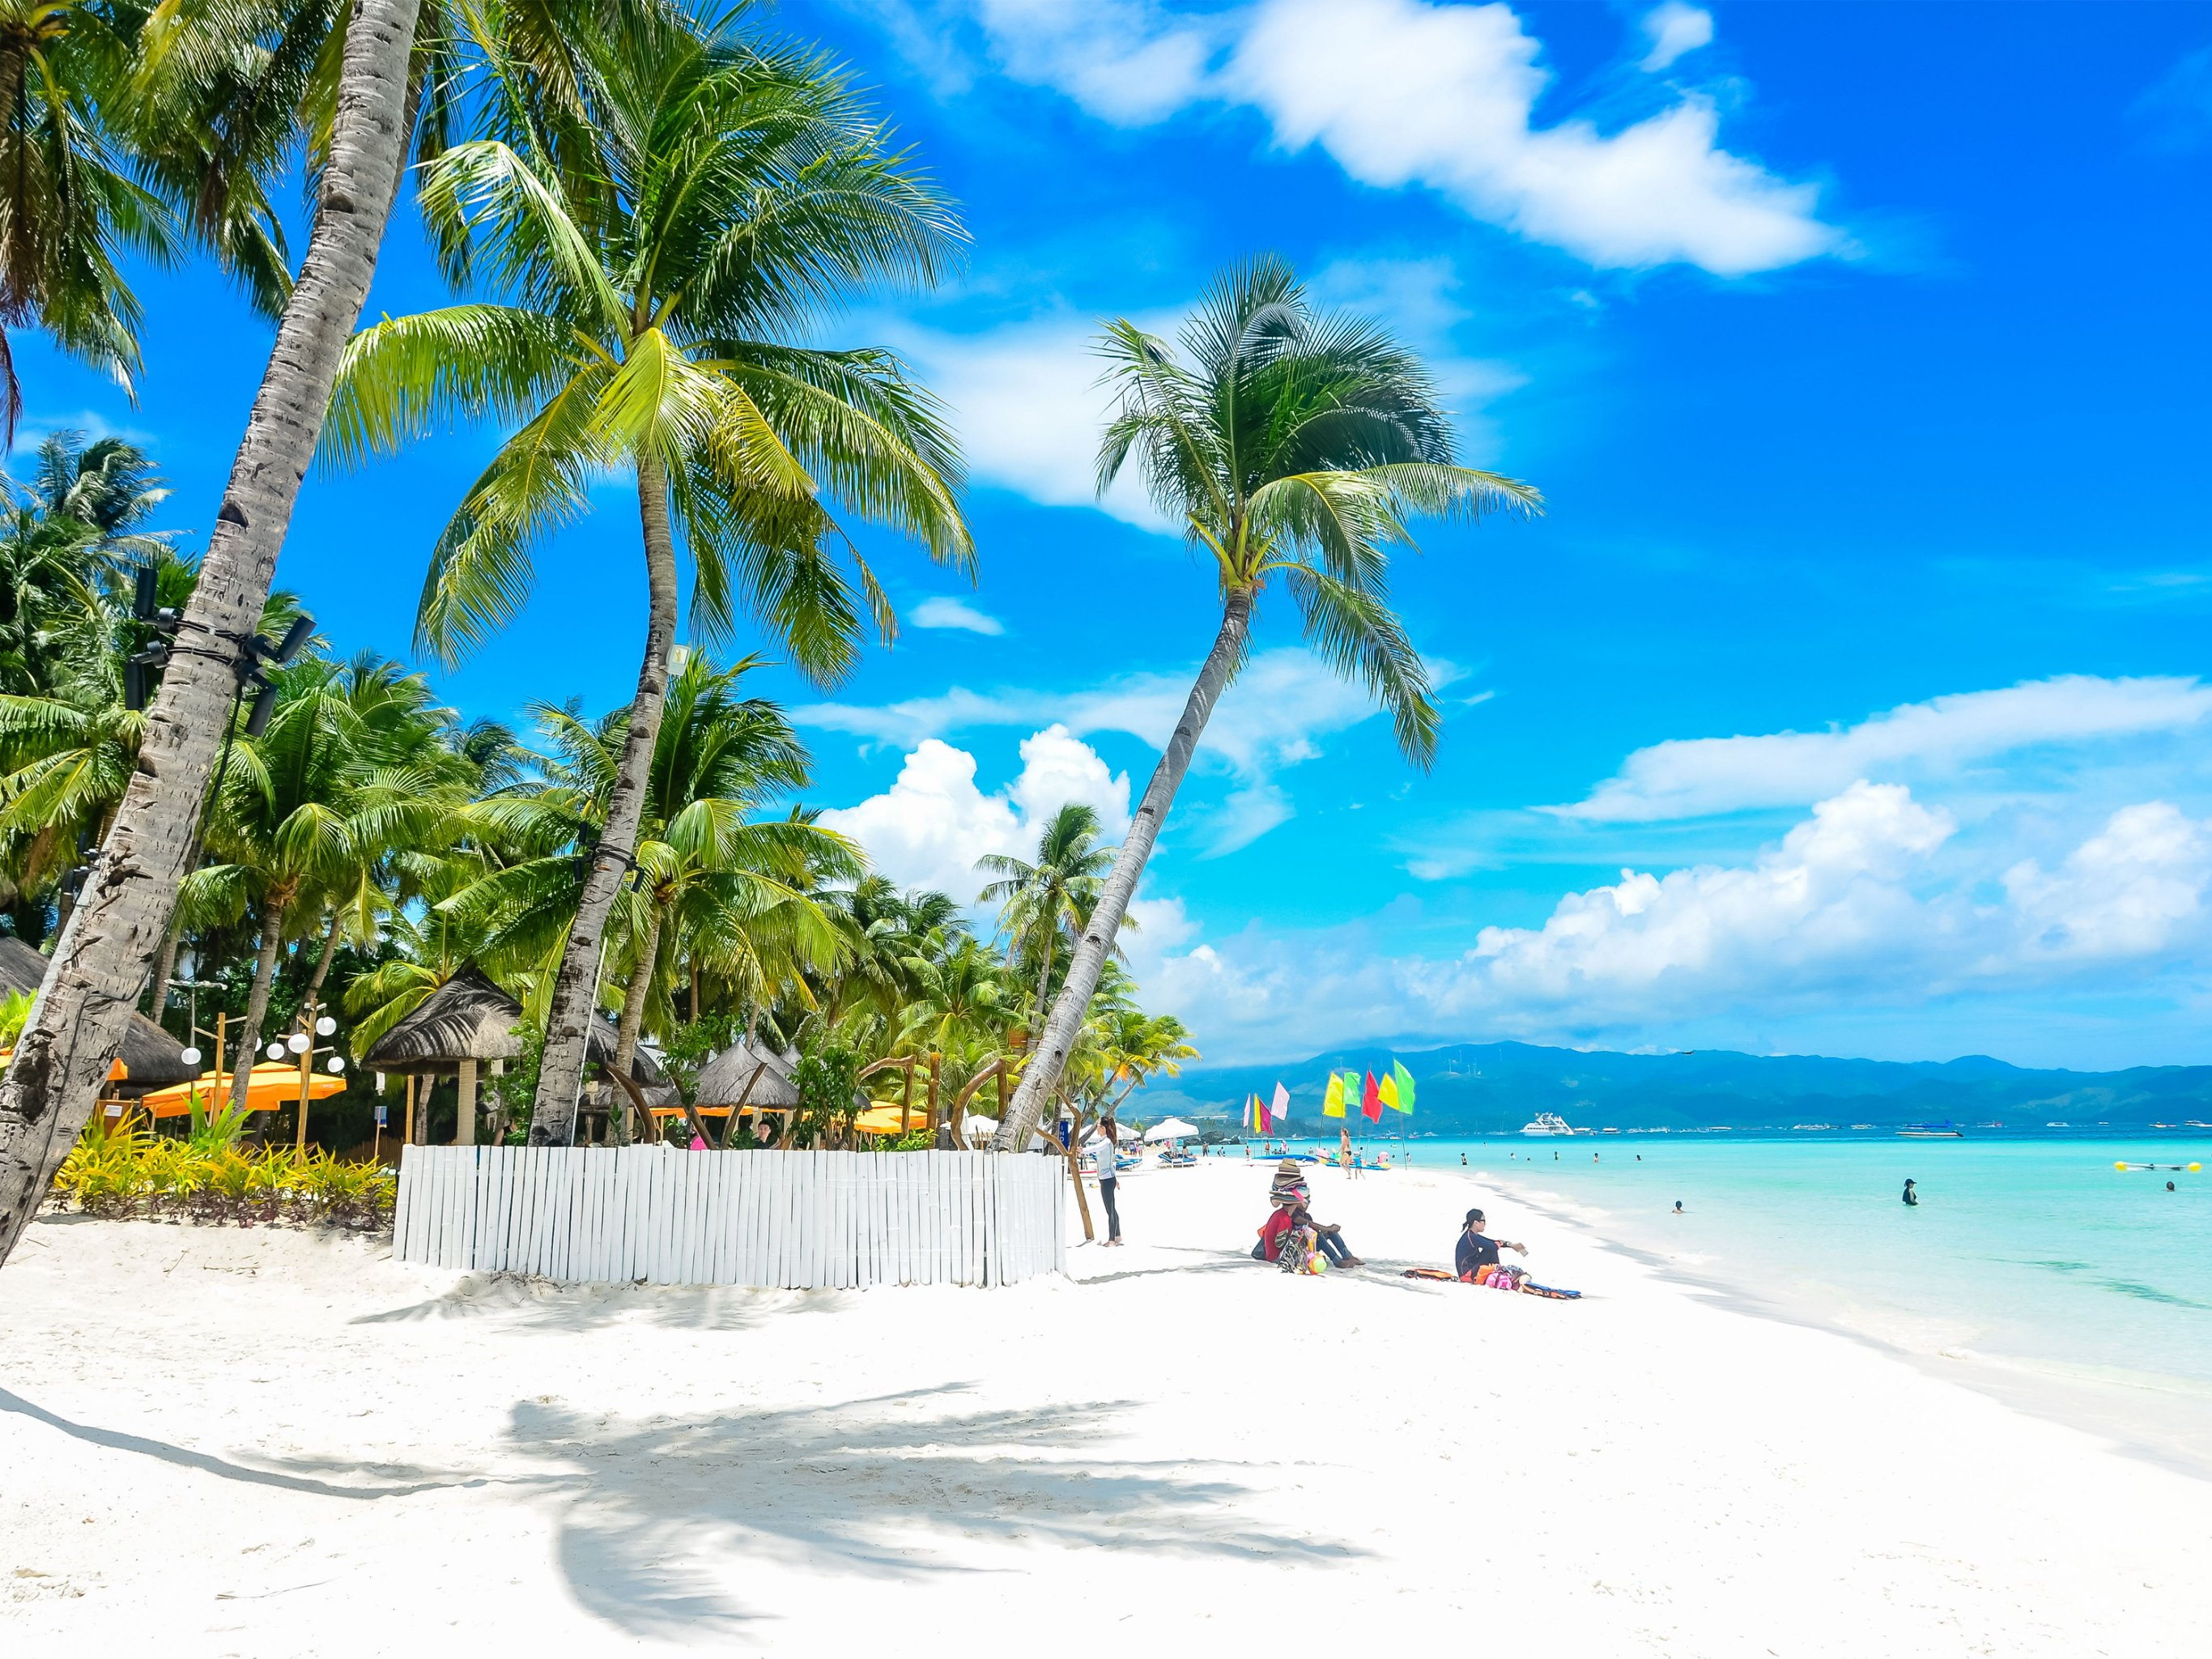 21-Day Heart and Soul of the Philippines - Philippines Itinerary